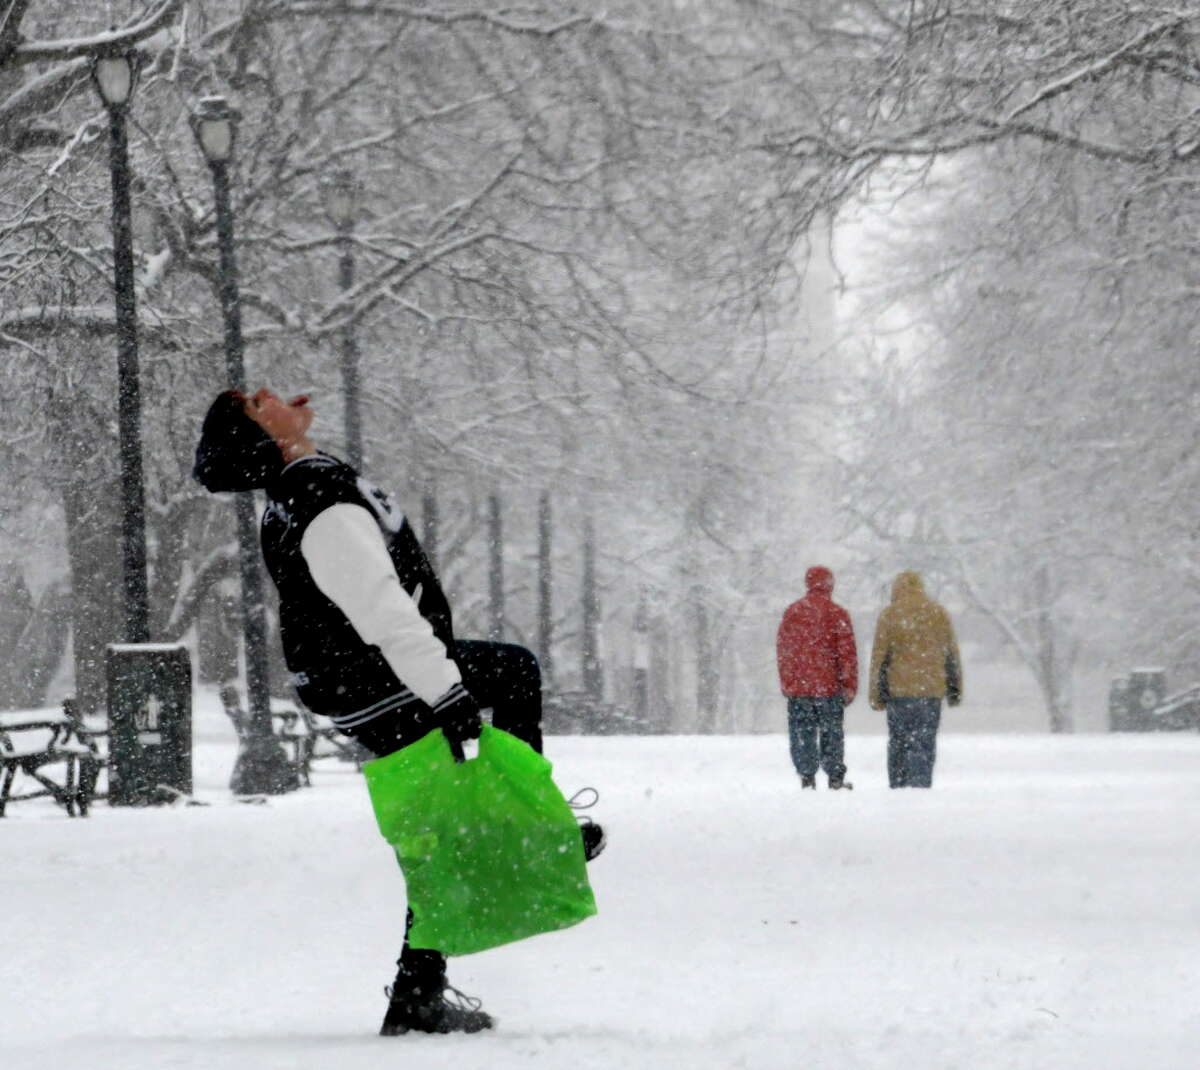 The Capital Region will get a taste of winter weather Thursday when the remnants of Hurriane Zeta move in and drop the first measurable snow of the fall. In this photograph, Alycia Johnson-Dardiz  of Albany tries catching snowflakes as she walks through Washington Park on Thursday, Dec. 29, 2016, in Albany N.Y. (Skip Dickstein/Times Union)